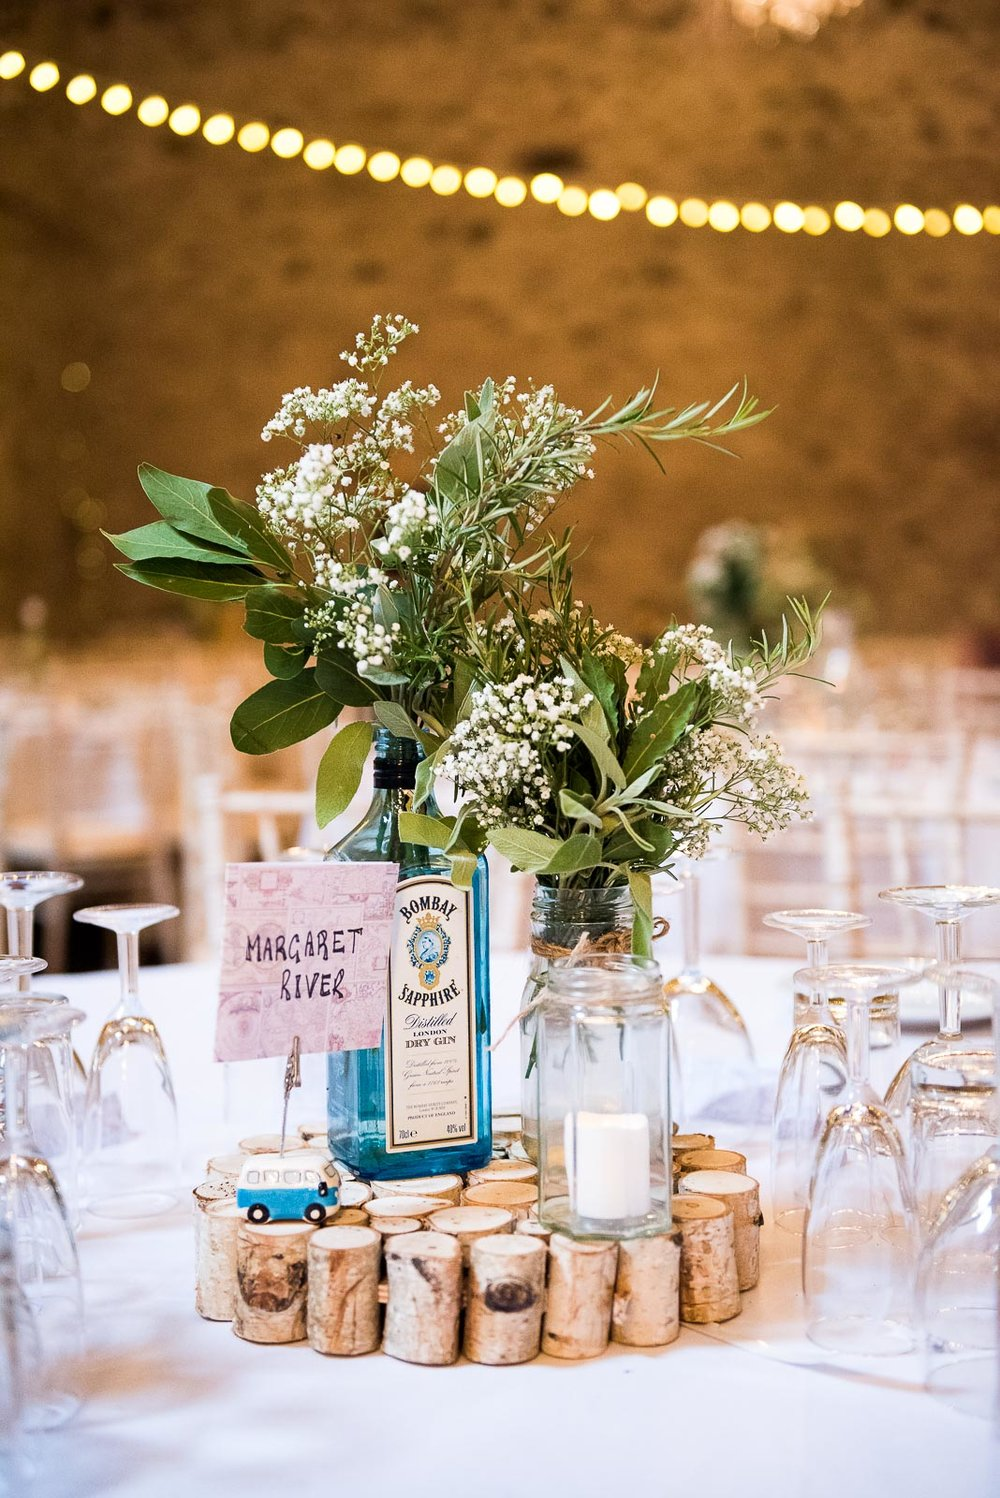 Rustic barn setting with the prettiest floral details © Jessica Grace Photography